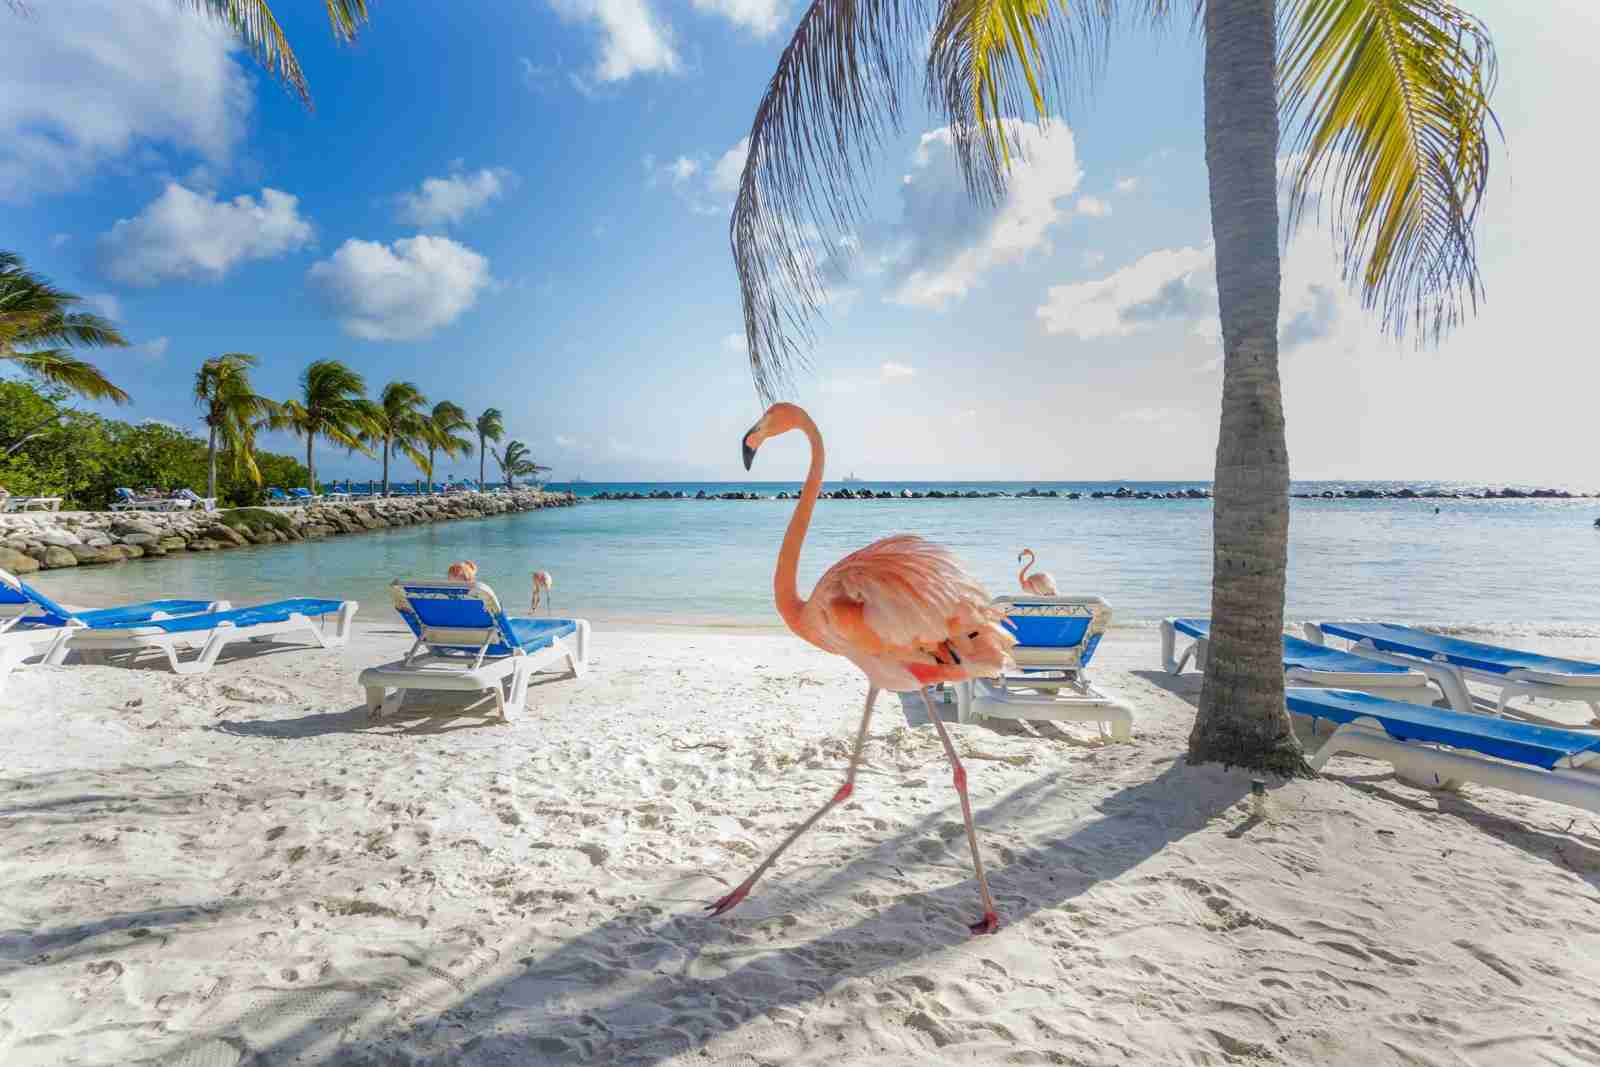 Flamingo Beach, Aruba. (Photo by MasterPhoto/Shutterstock)